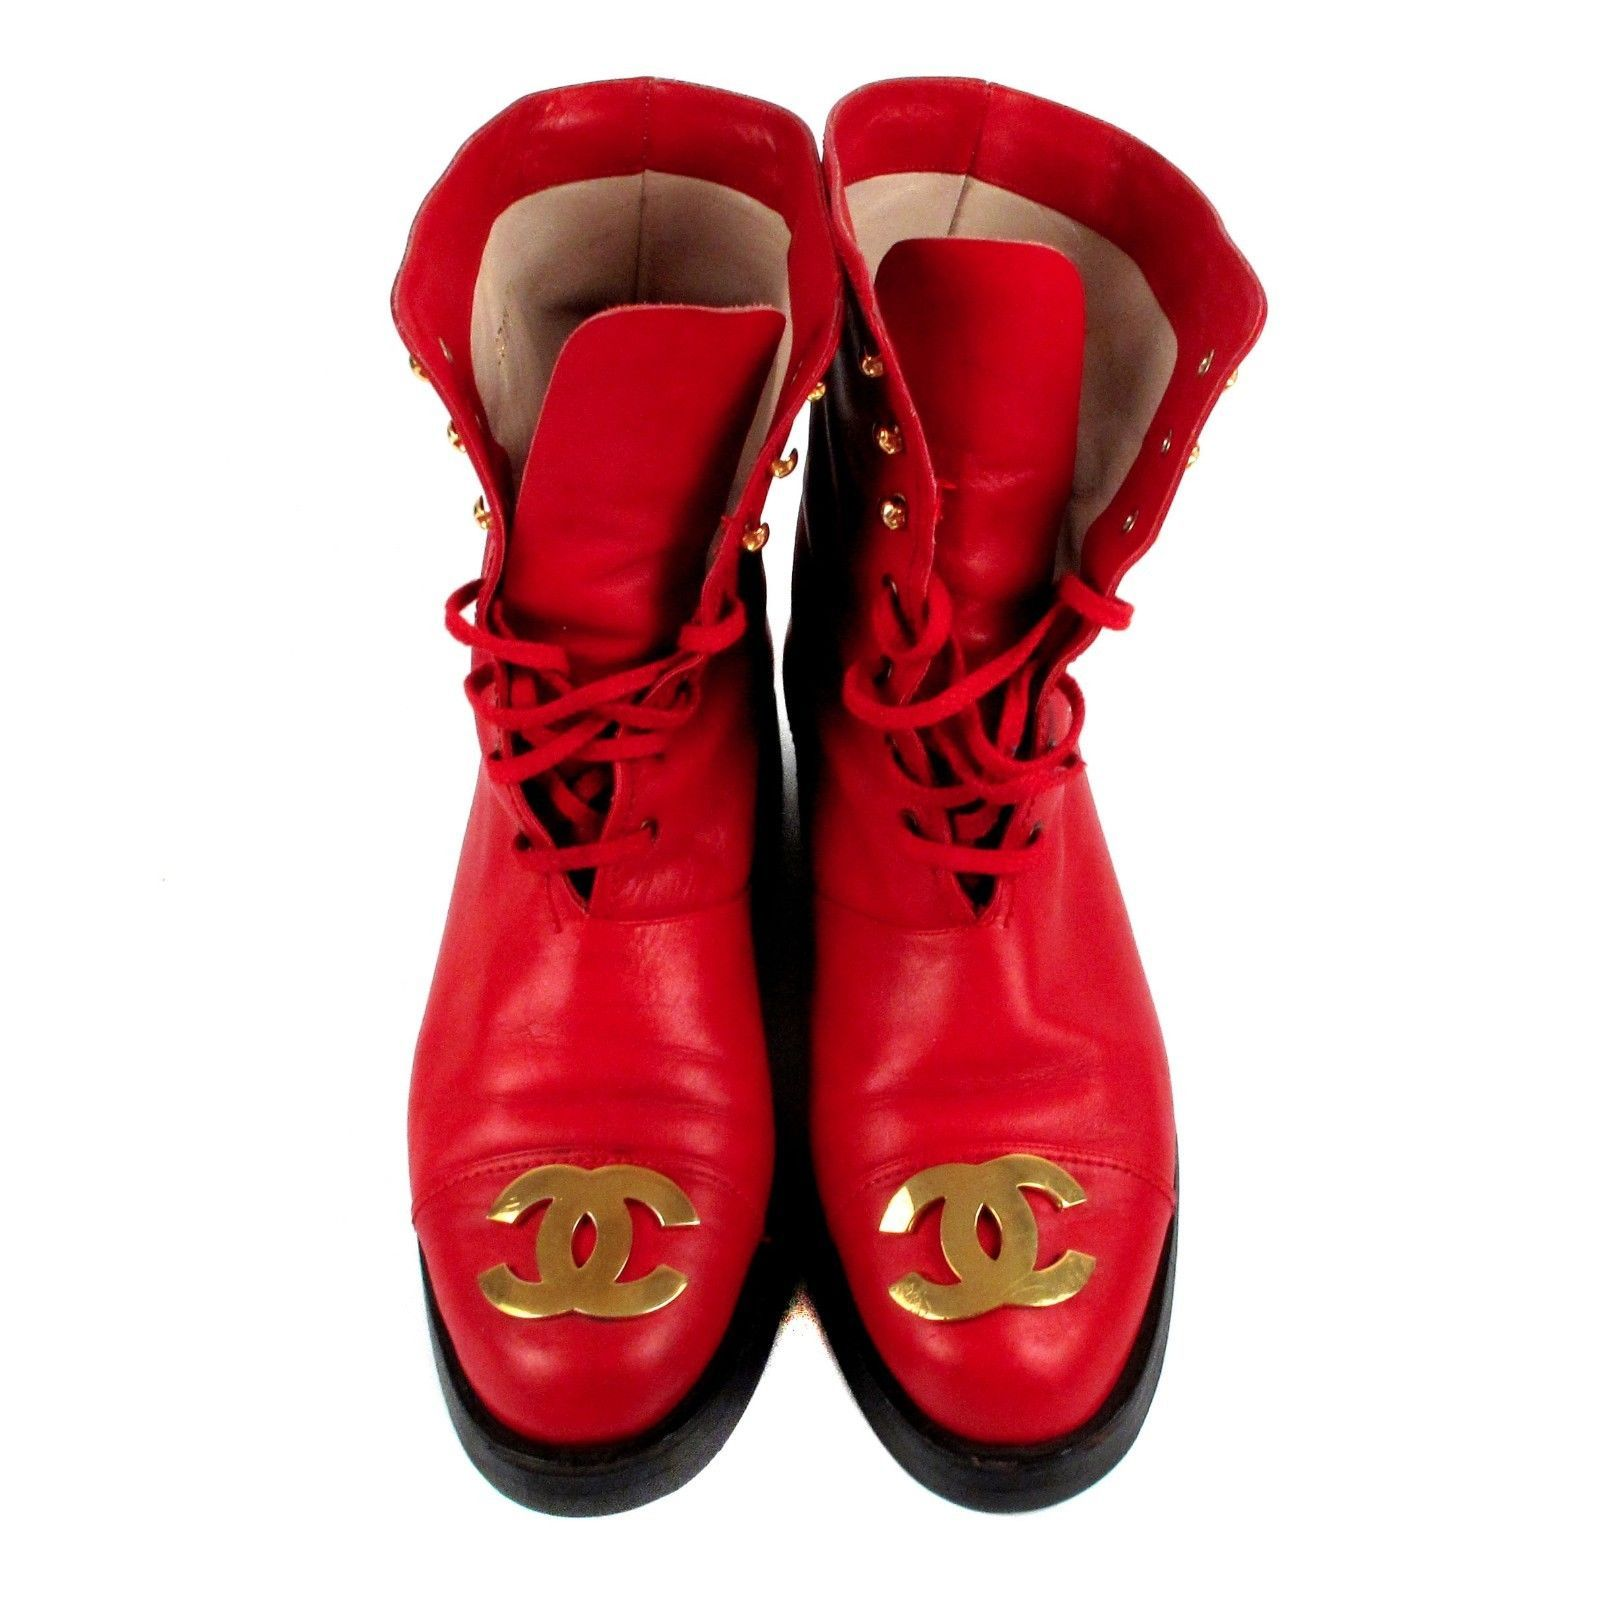 Most Wanted Ever Combat Boots 9.5 39.5